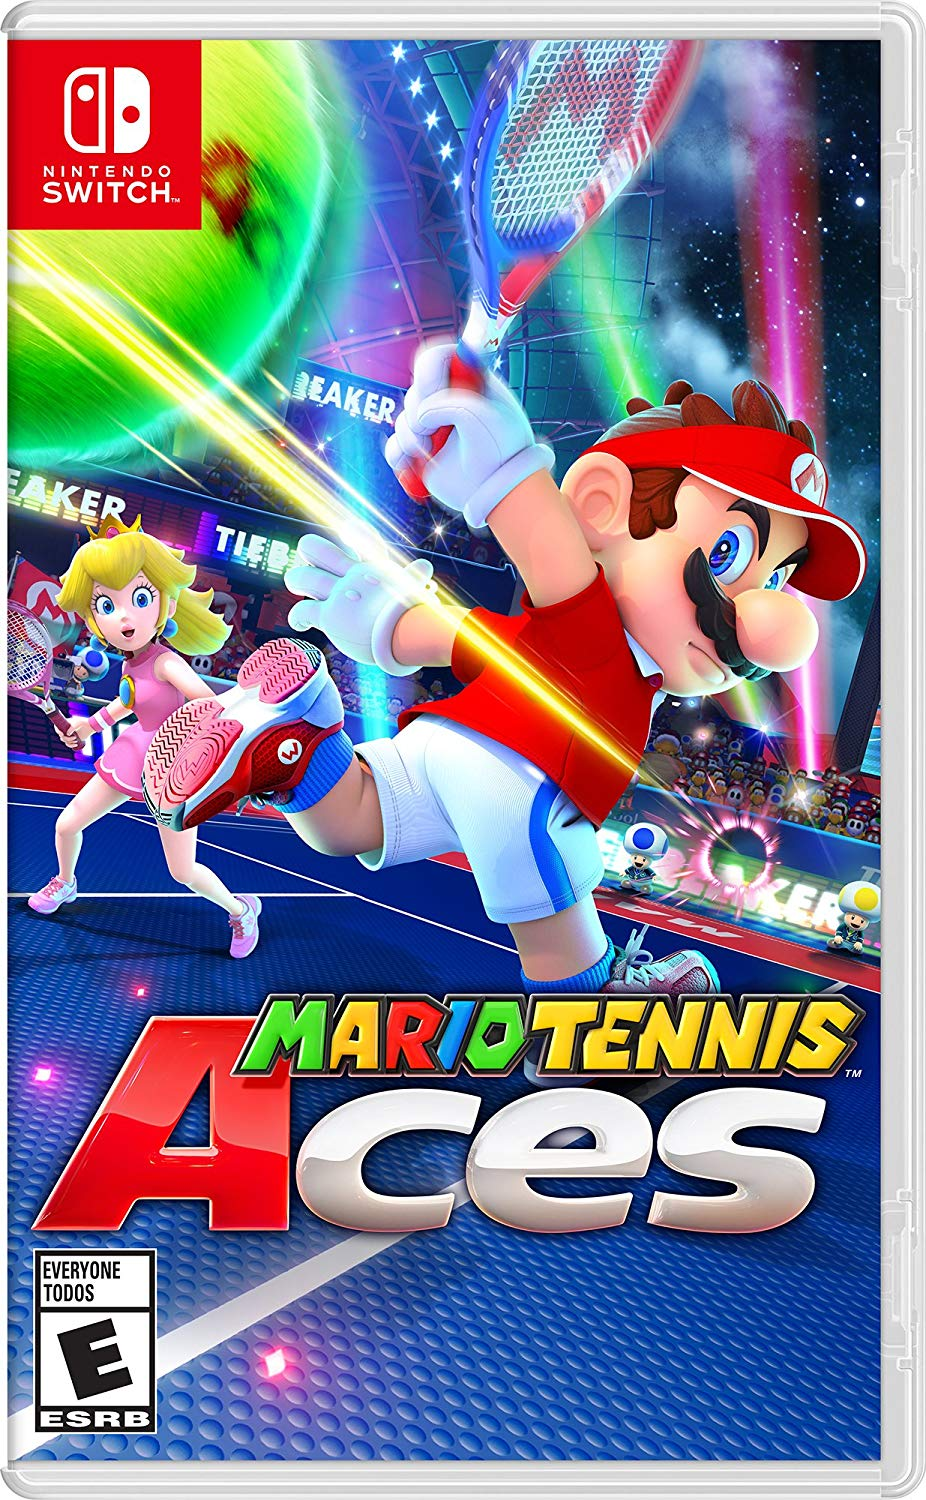 Mario Tennis - Nintendo Switch